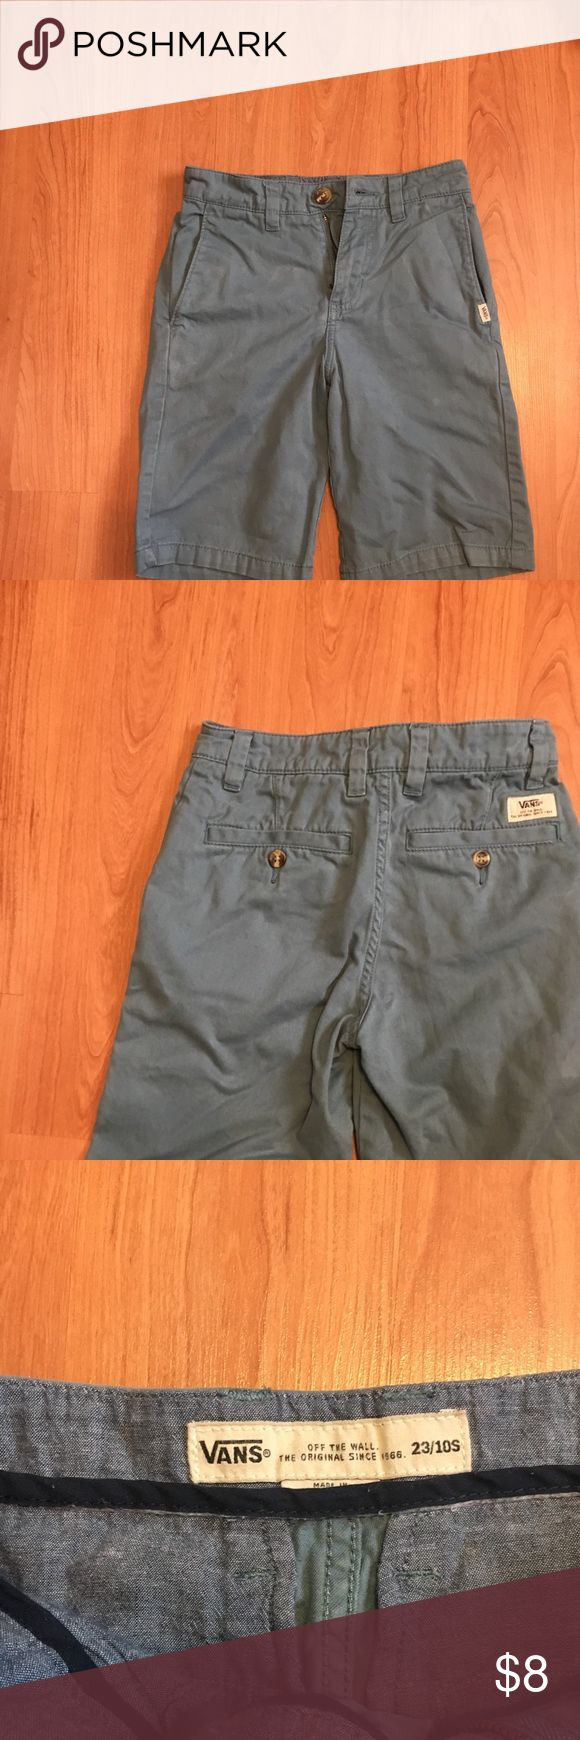 Boys size 10 Vans Skate shorts Boys dusty blue 10s skater shorts. Slight color variations add to the charm, purchased this way. Vans Bottoms Shorts